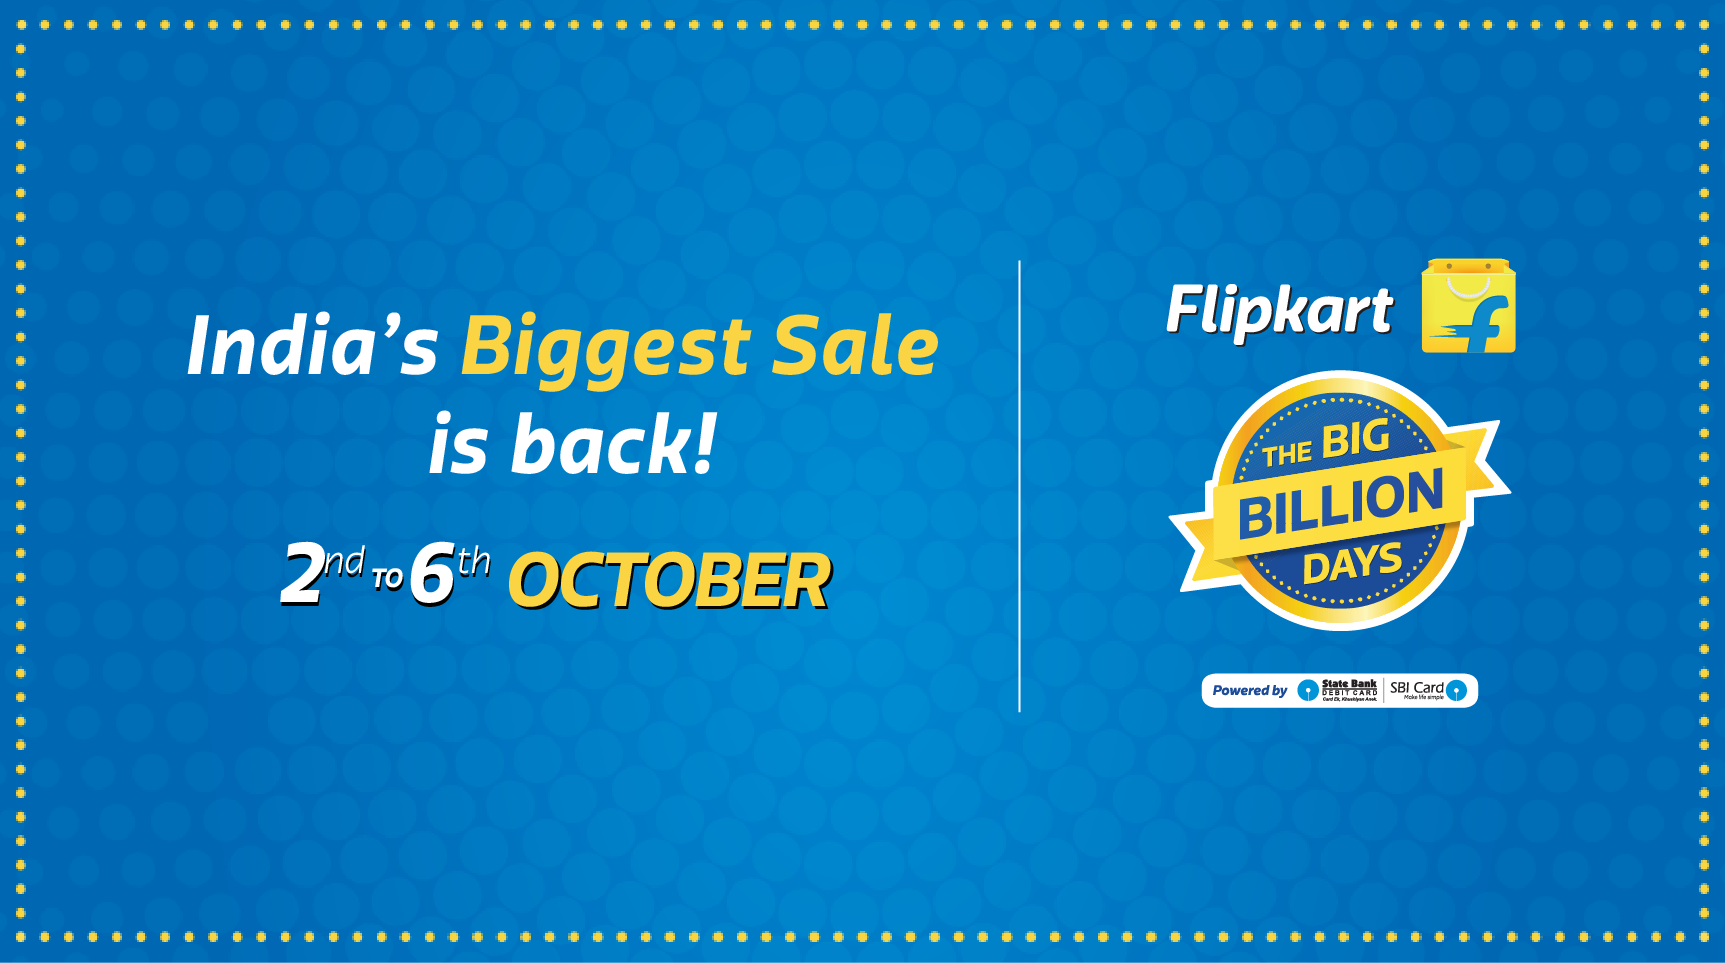 Free discount coupons for flipkart